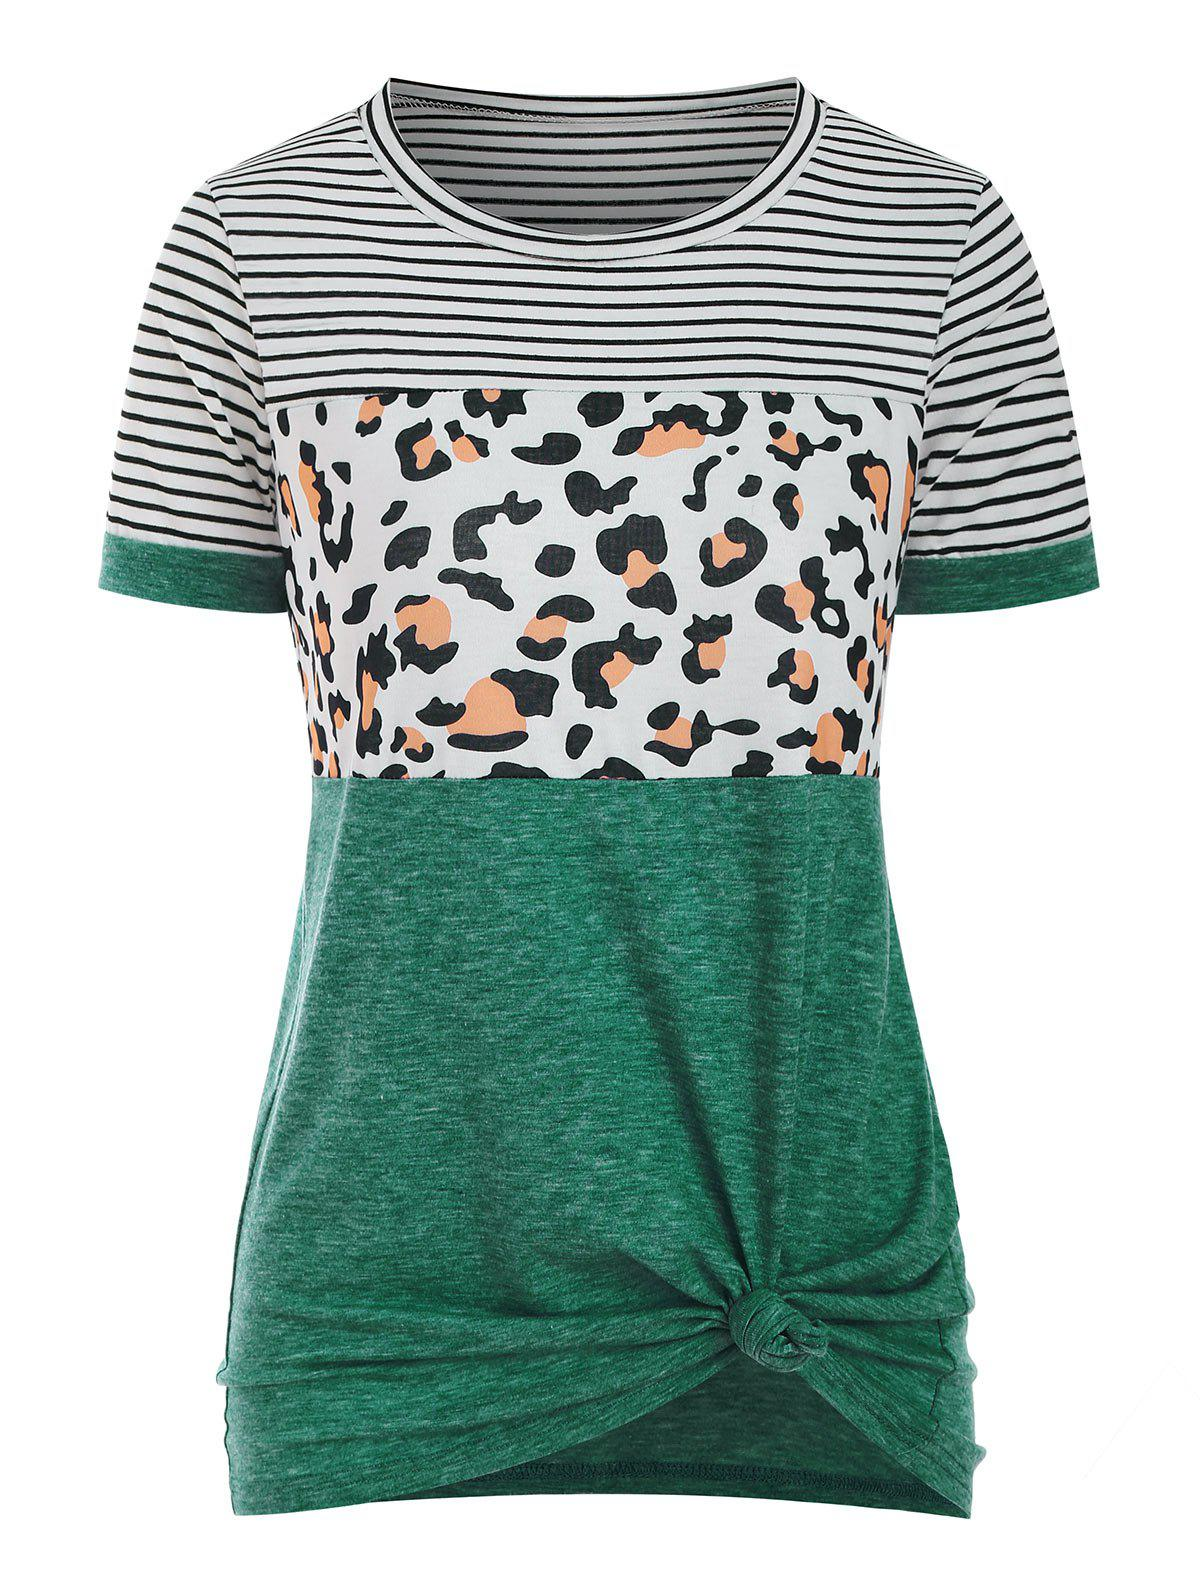 Latest Striped Leopard Short Sleeve T-shirt